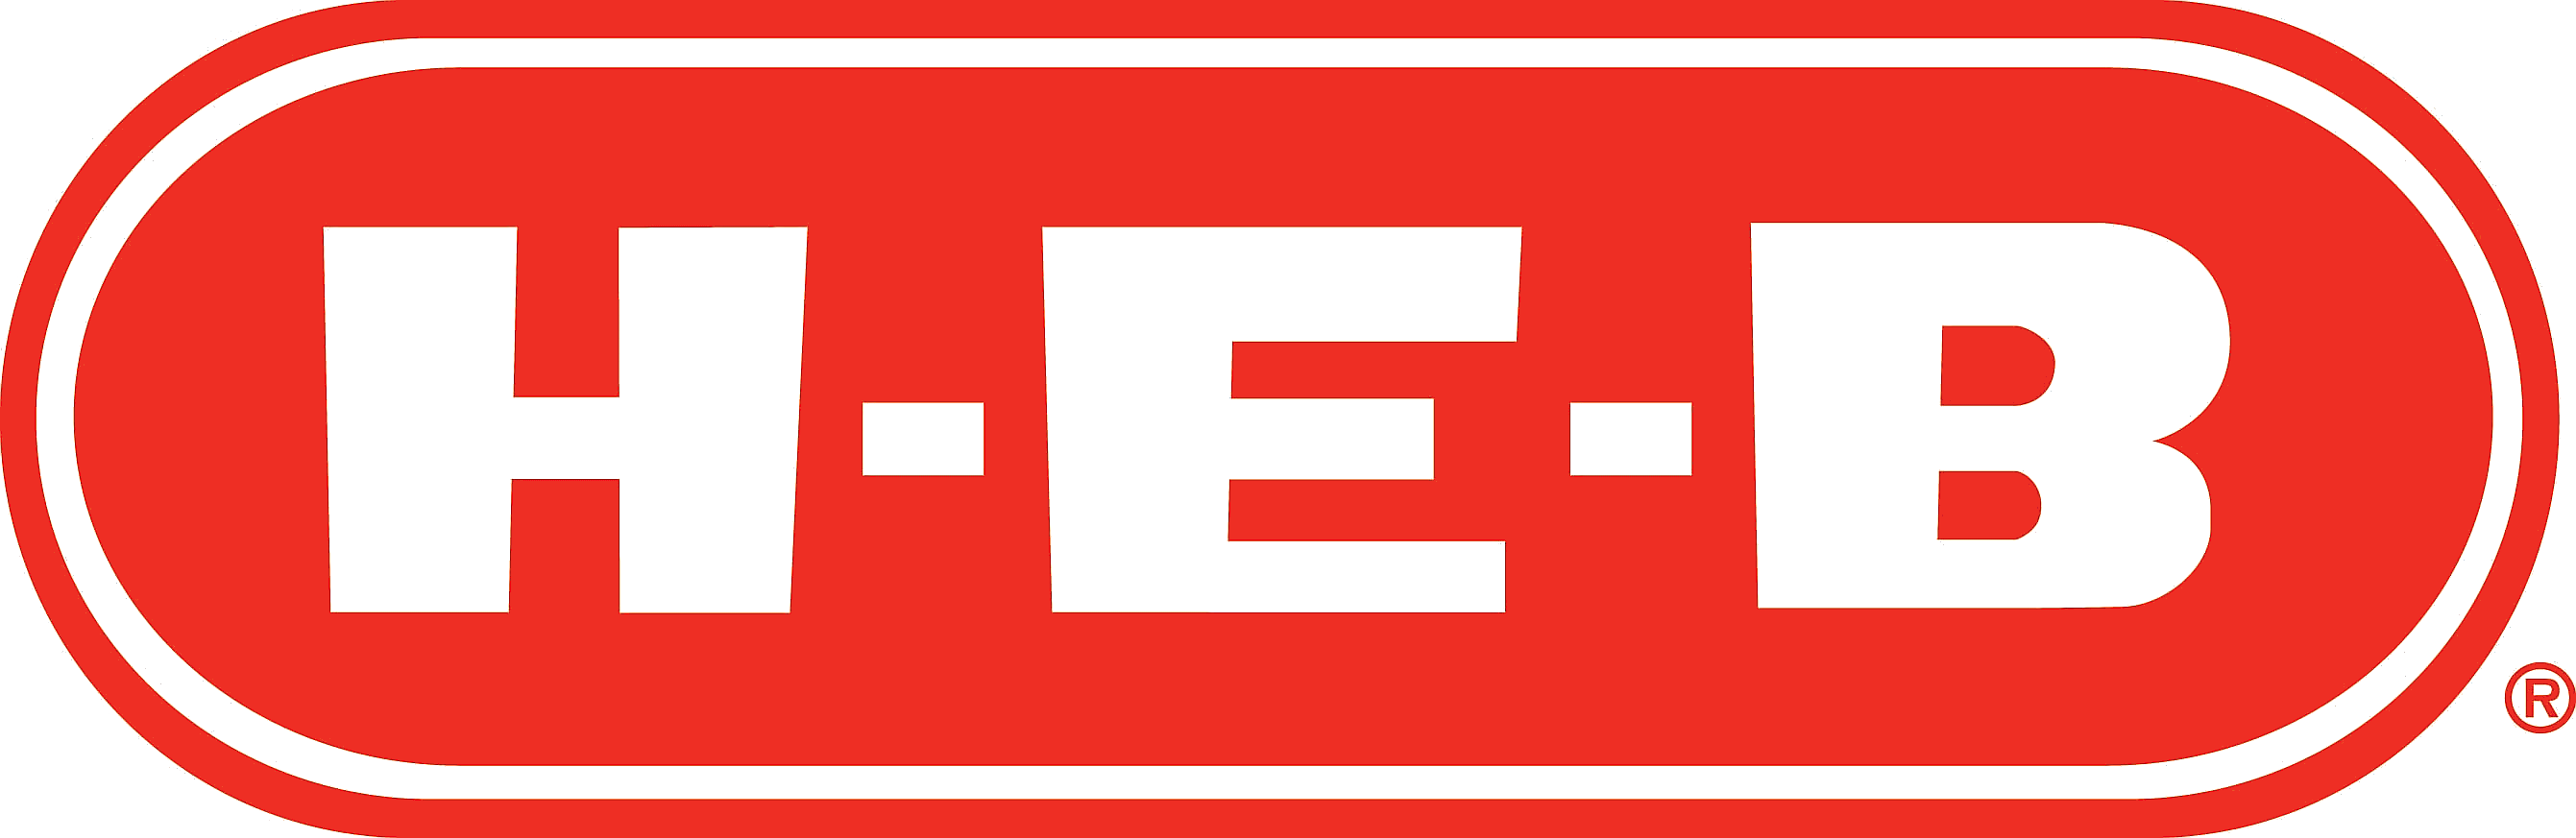 File:Logo of the HEB Grocery Company, LP.png.